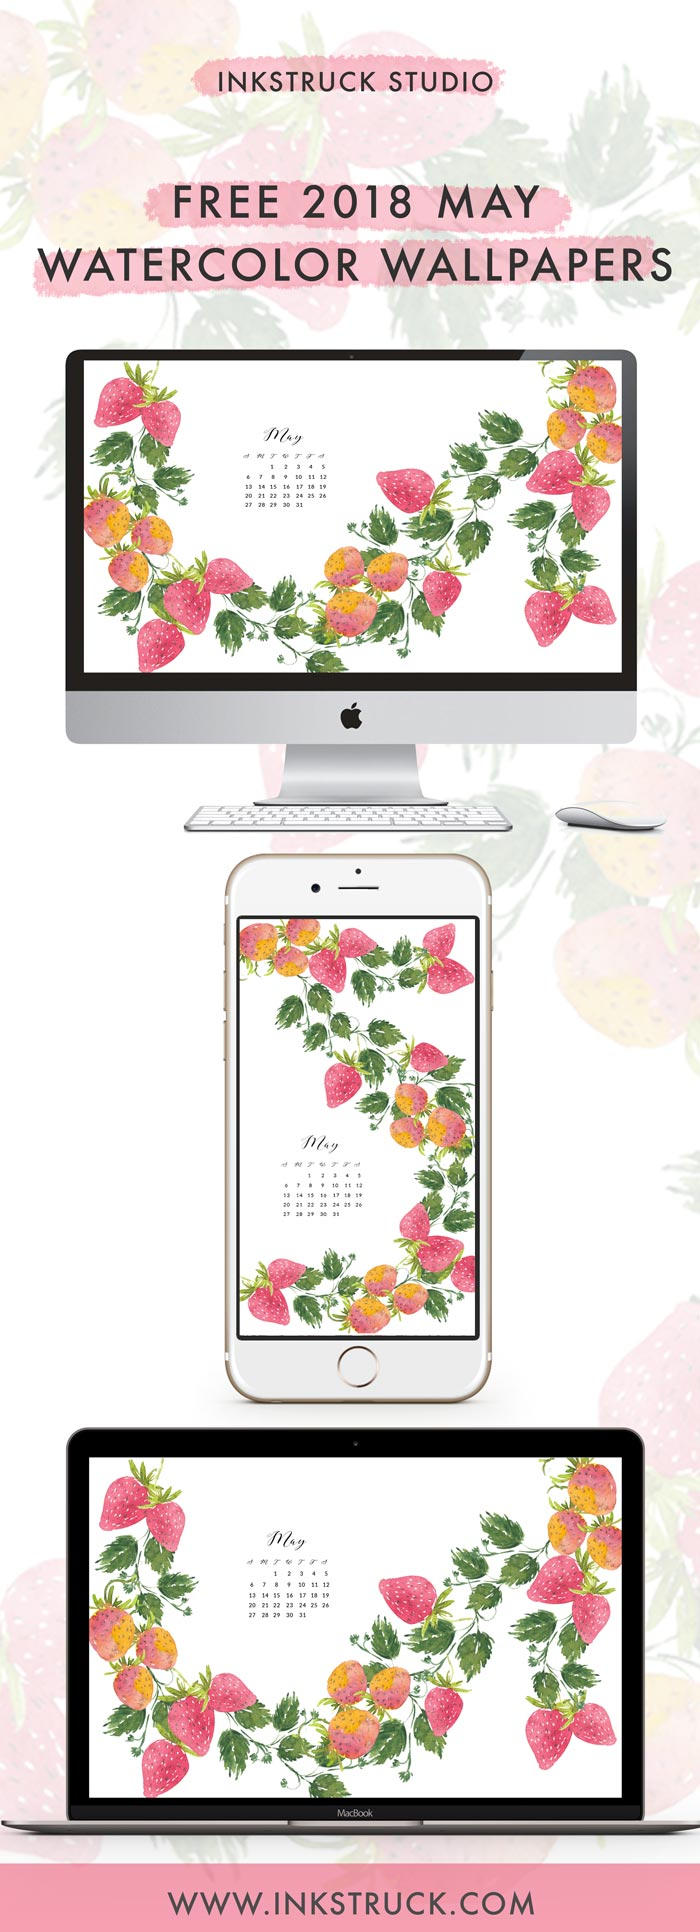 Grab my free 2018 May watercolor wallpapers on the blog now with both dated and undated versions for phones and desktops. - Inkstruck Studio